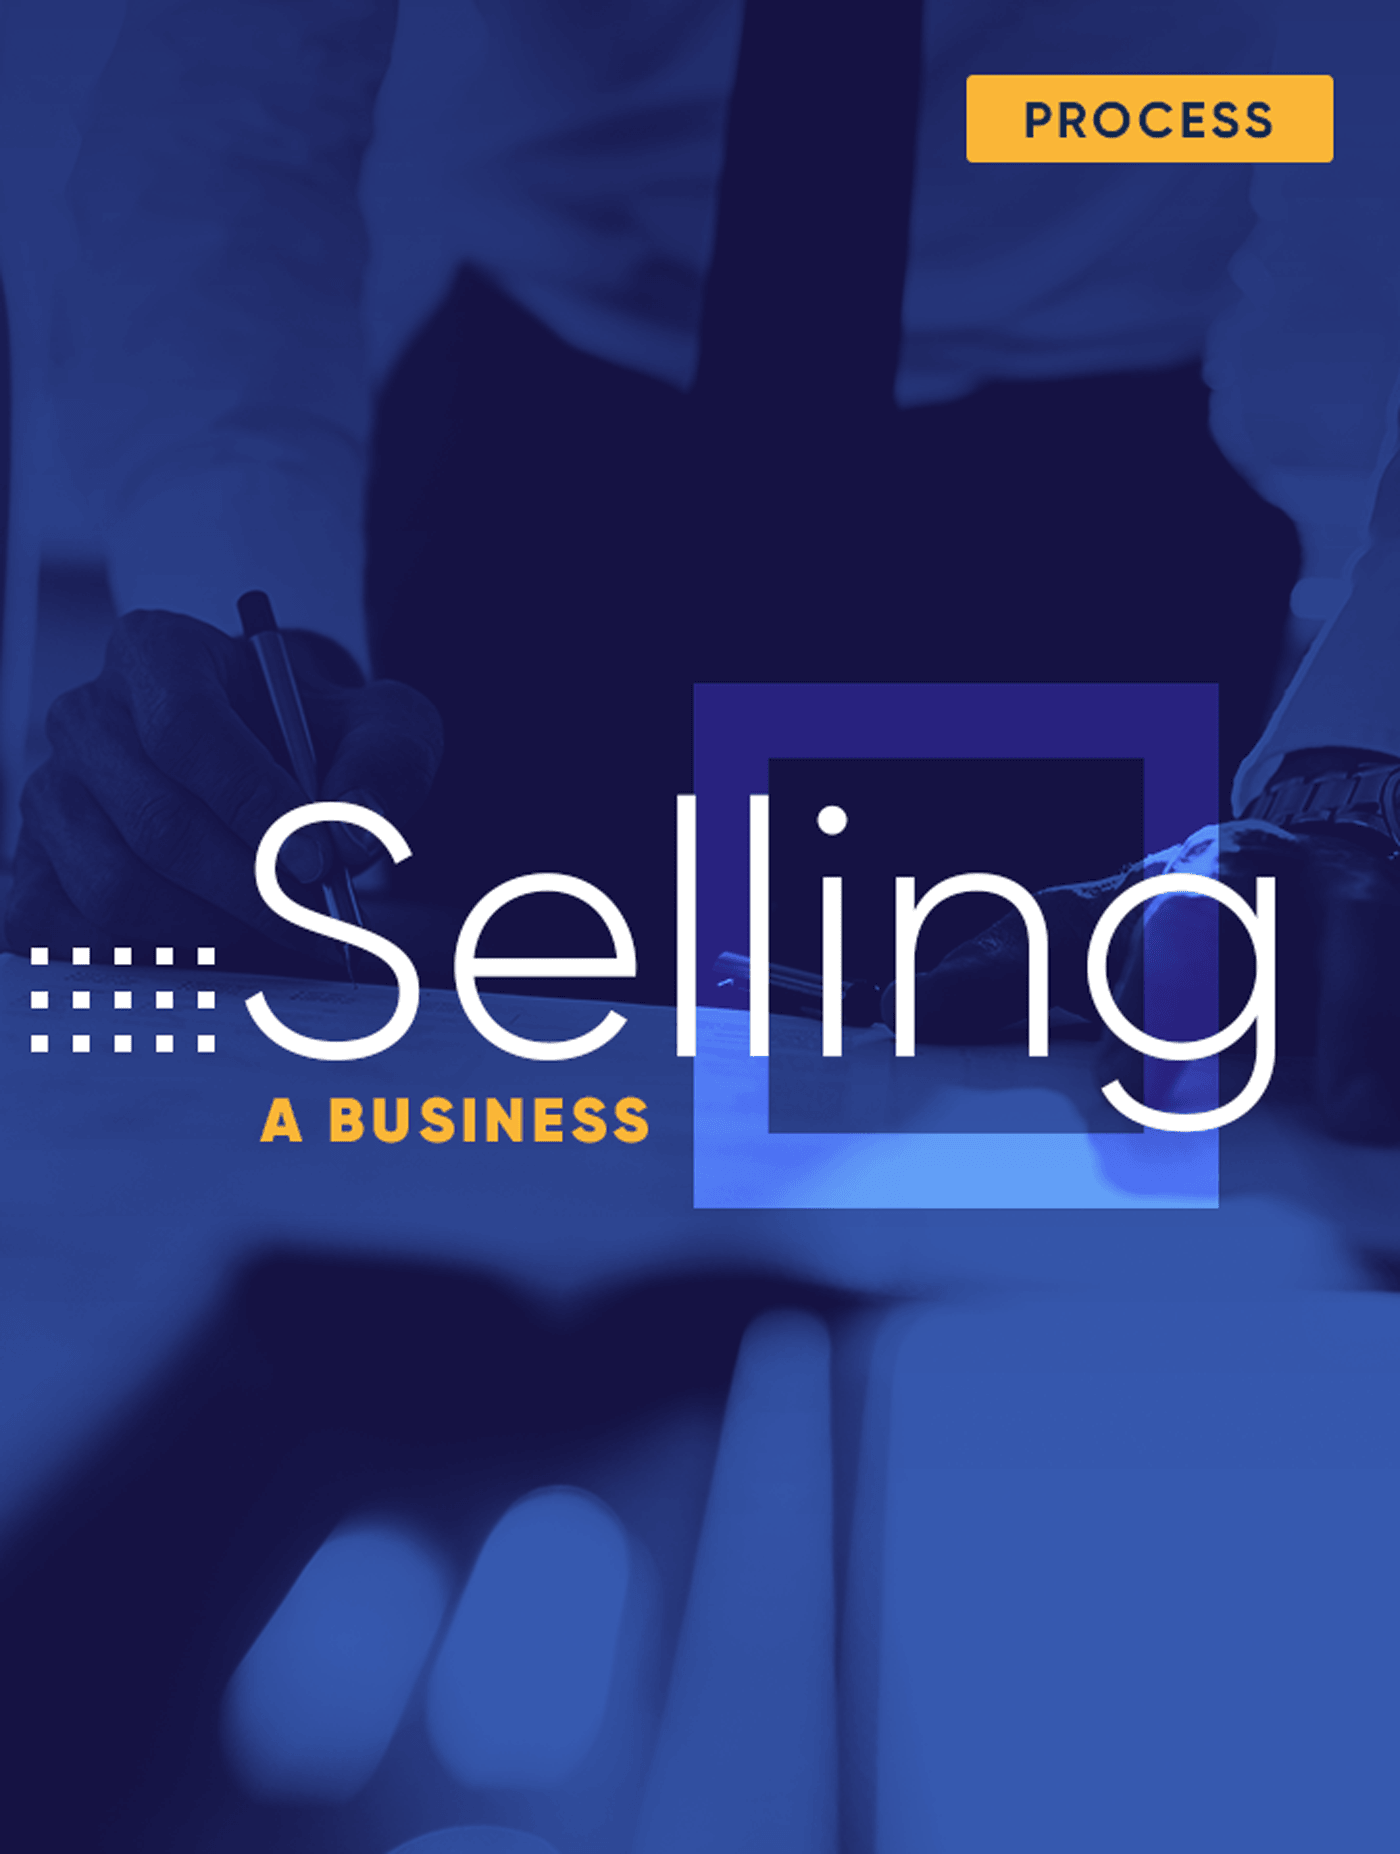 selling a business process